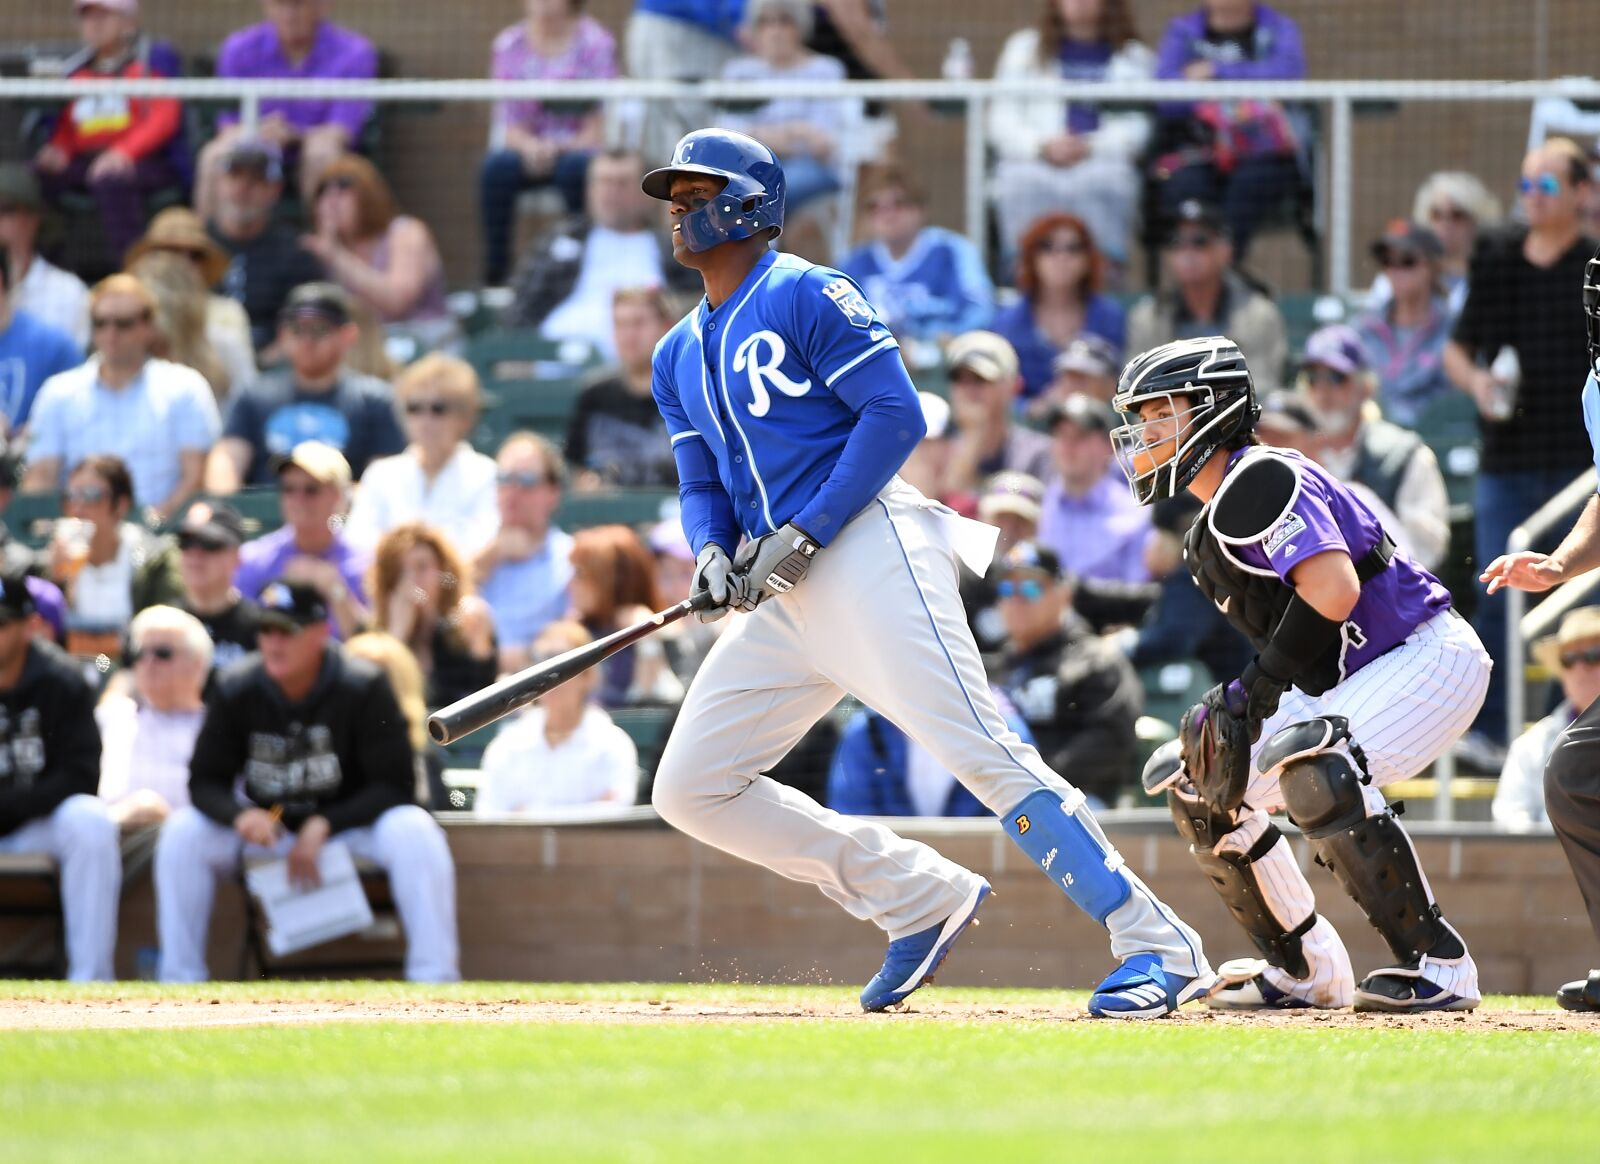 Kansas City Royals right field situation is disastrous